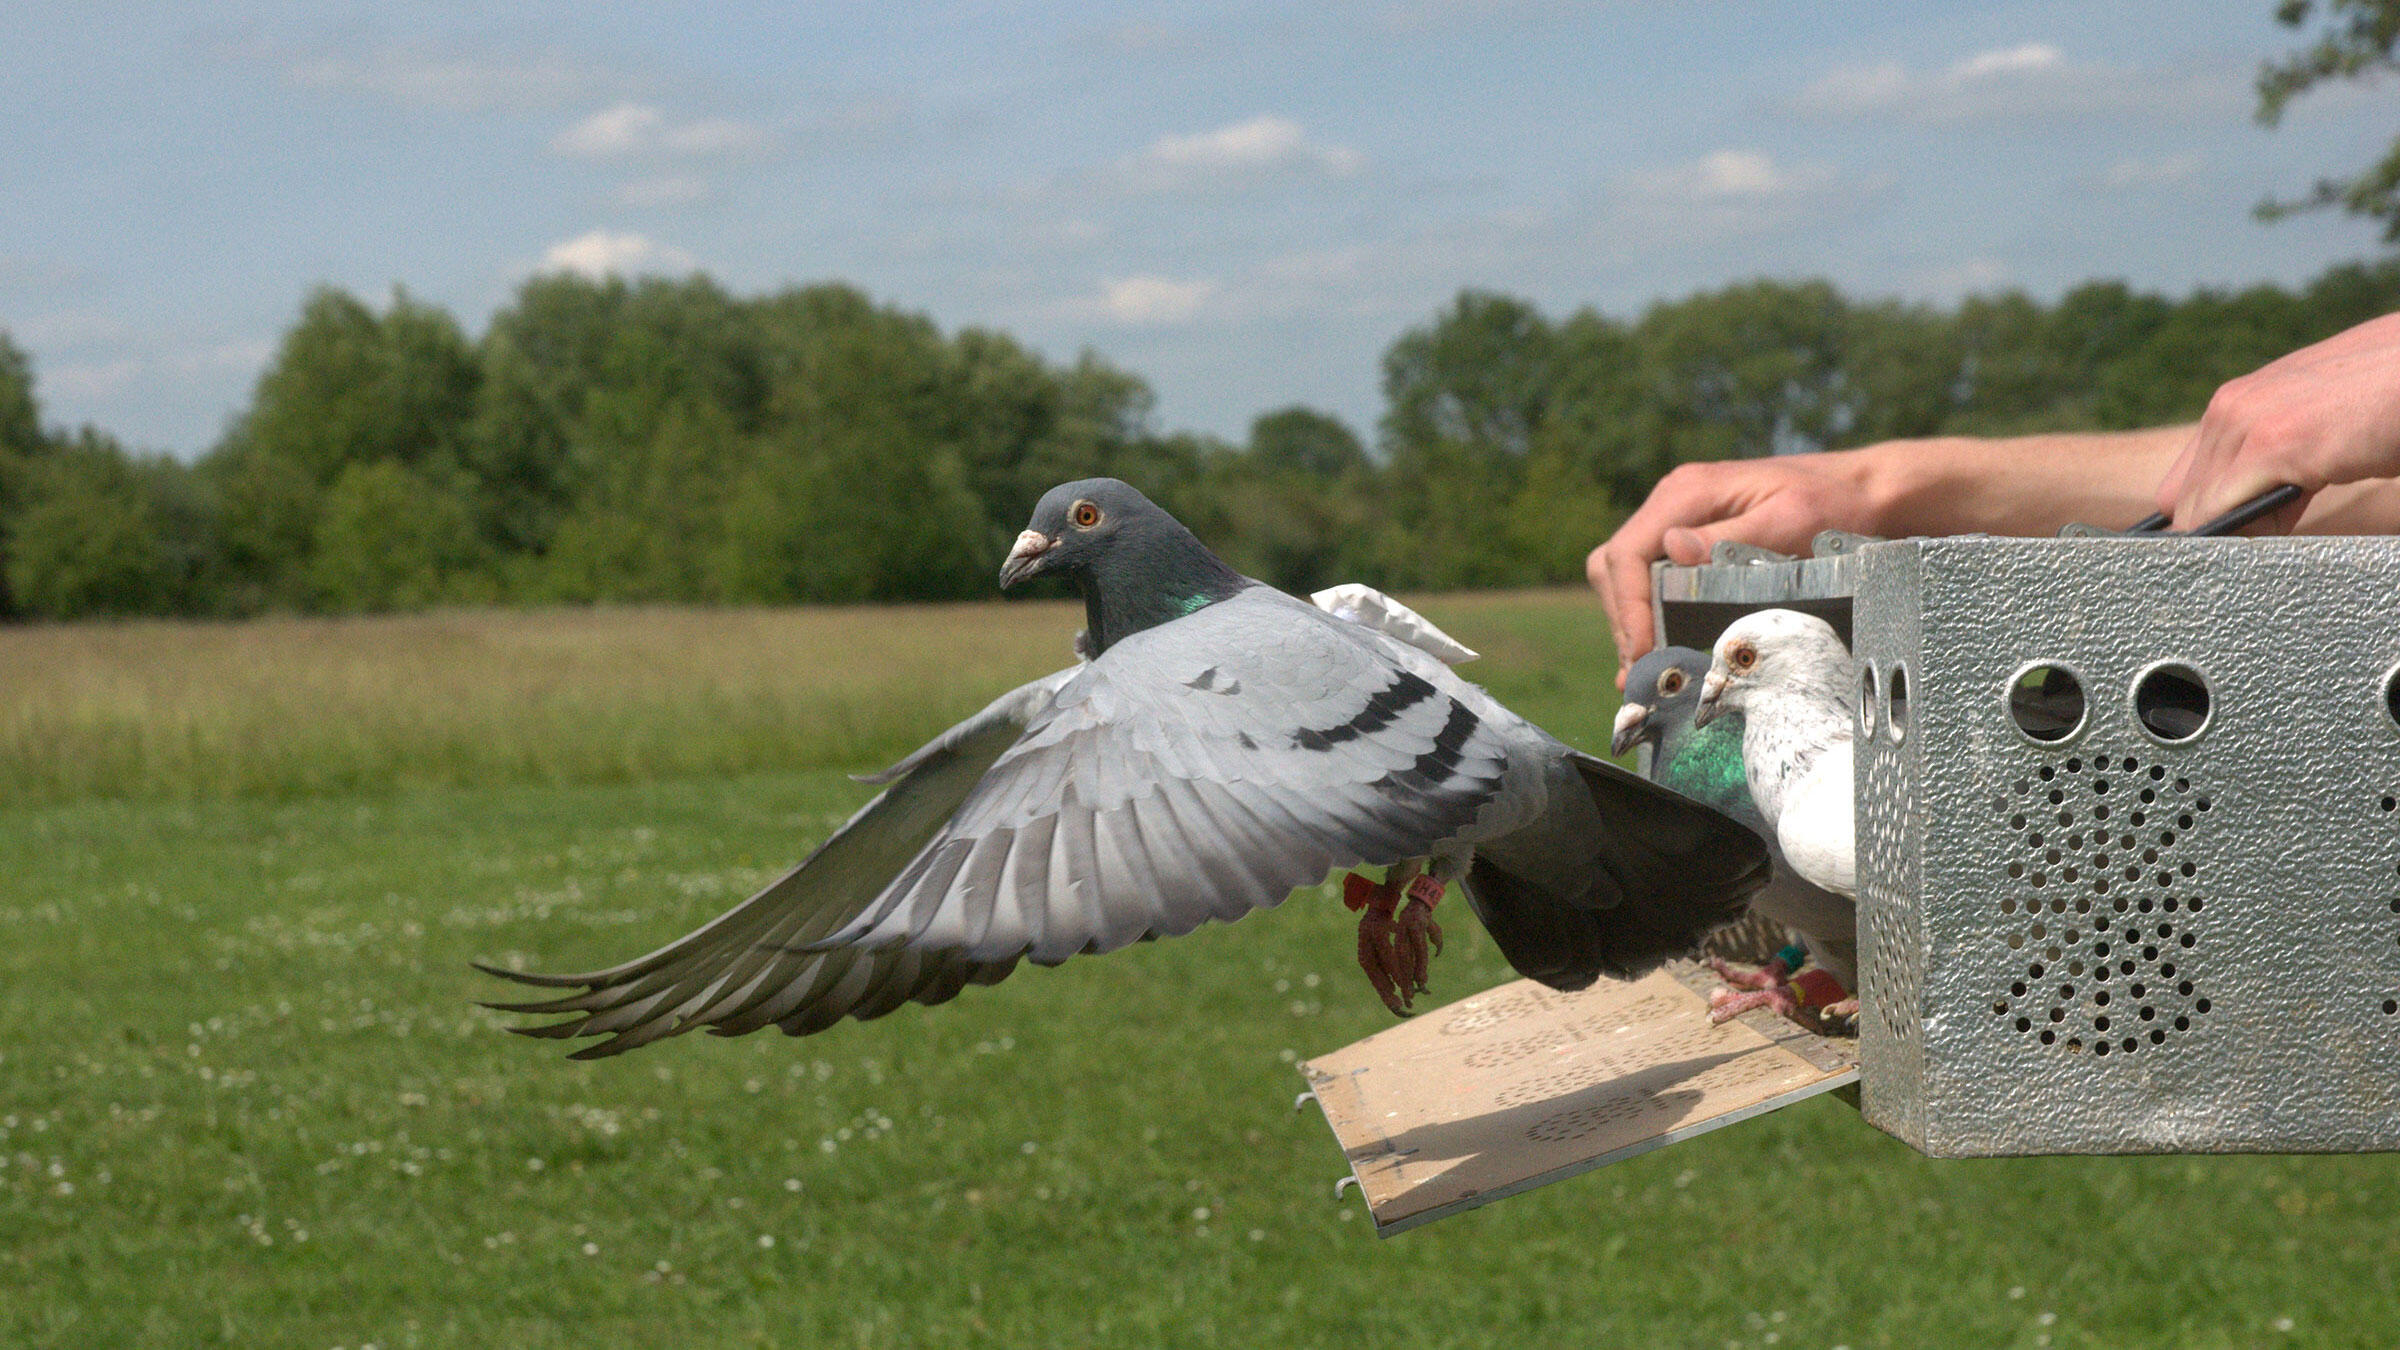 The leader of a pigeon flock usually flies in front—until it's demoted by its flockmates. Zsuzsa Ákos